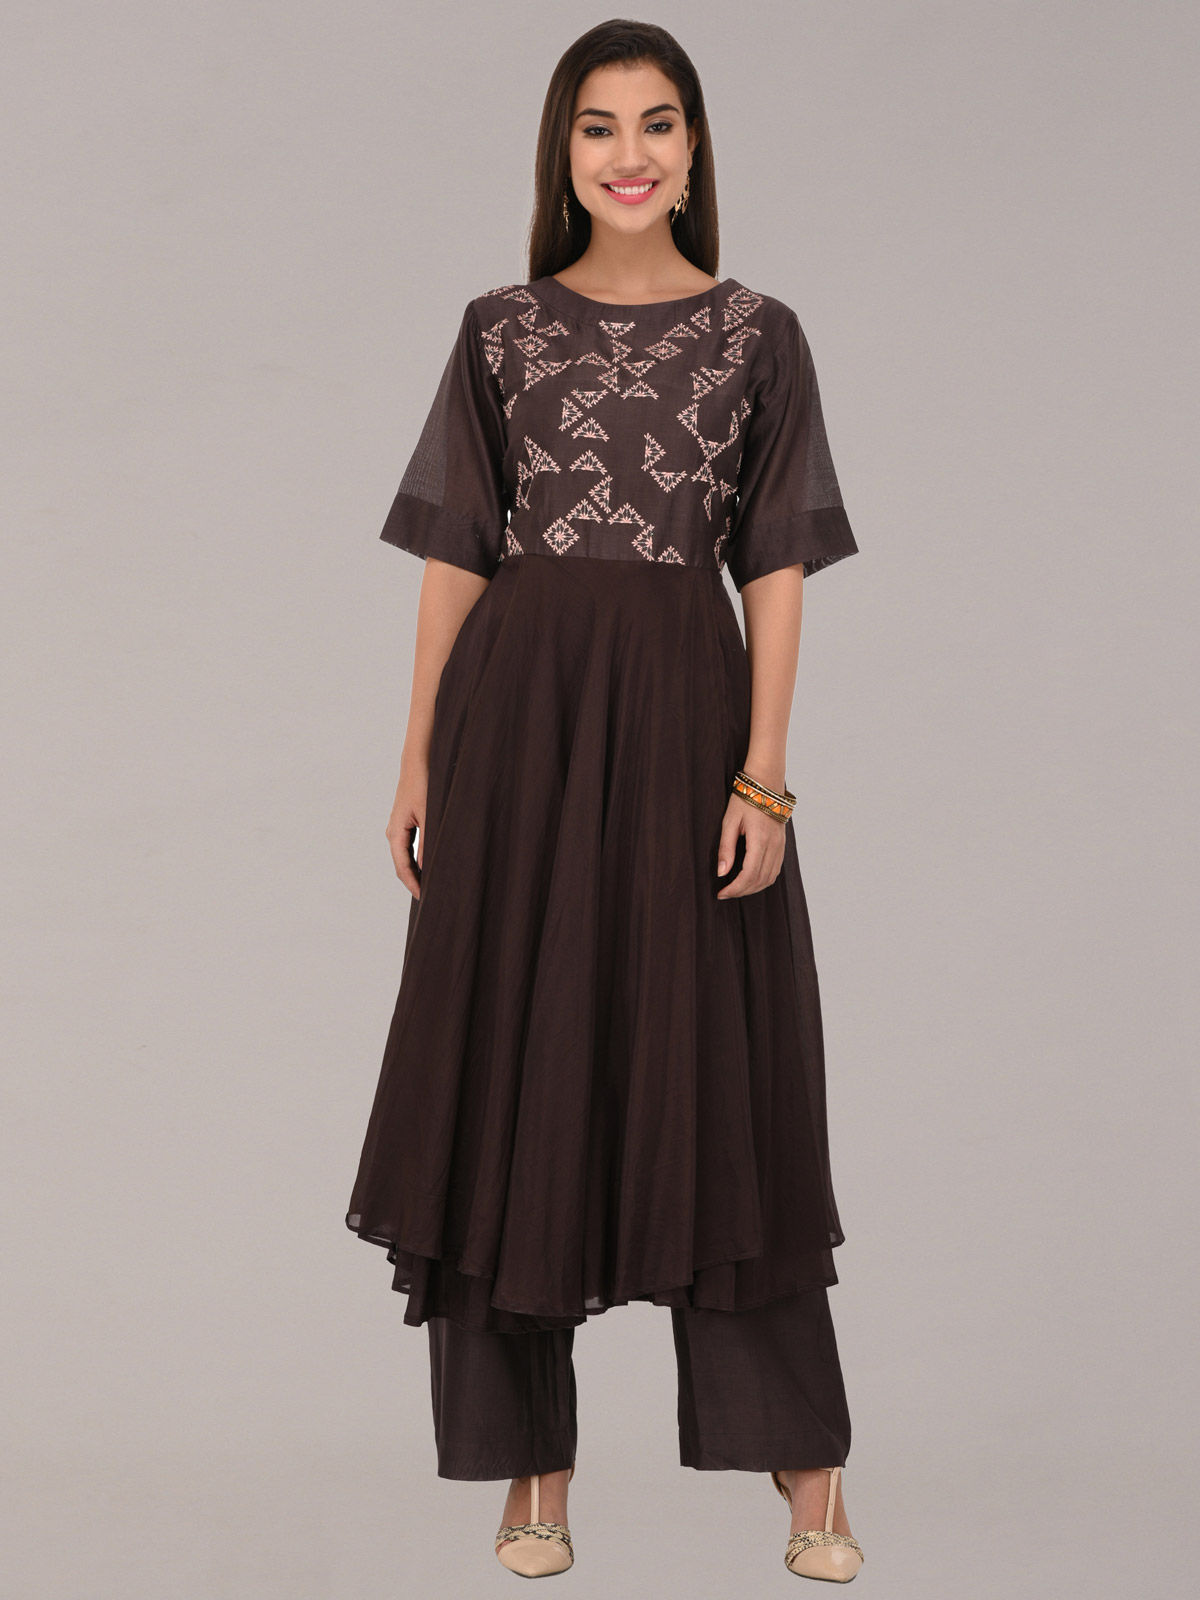 Embroided coffee chanderi silk multi layered tunic with bottom